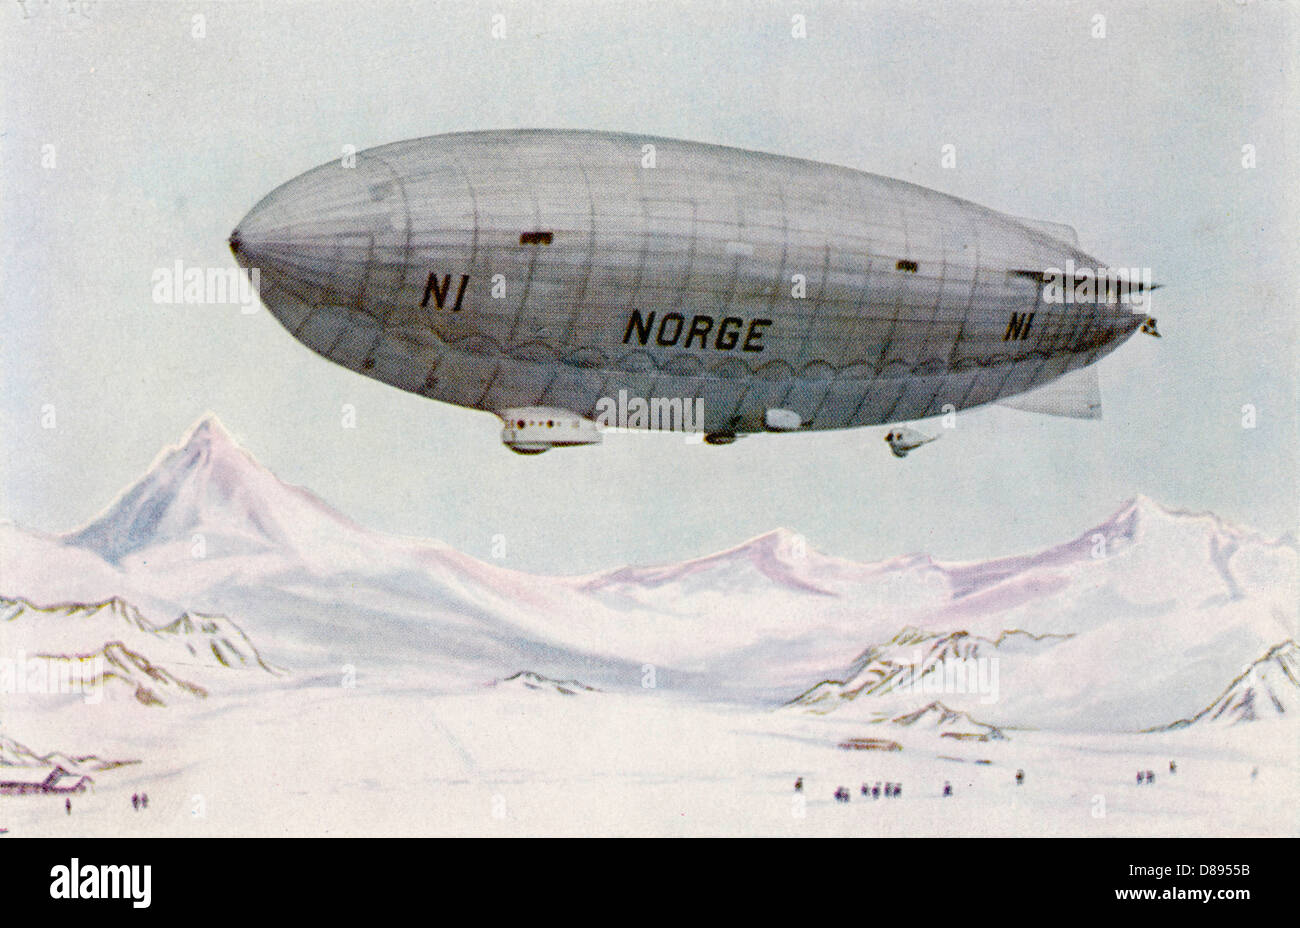 Norge In Arctic - Stock Image